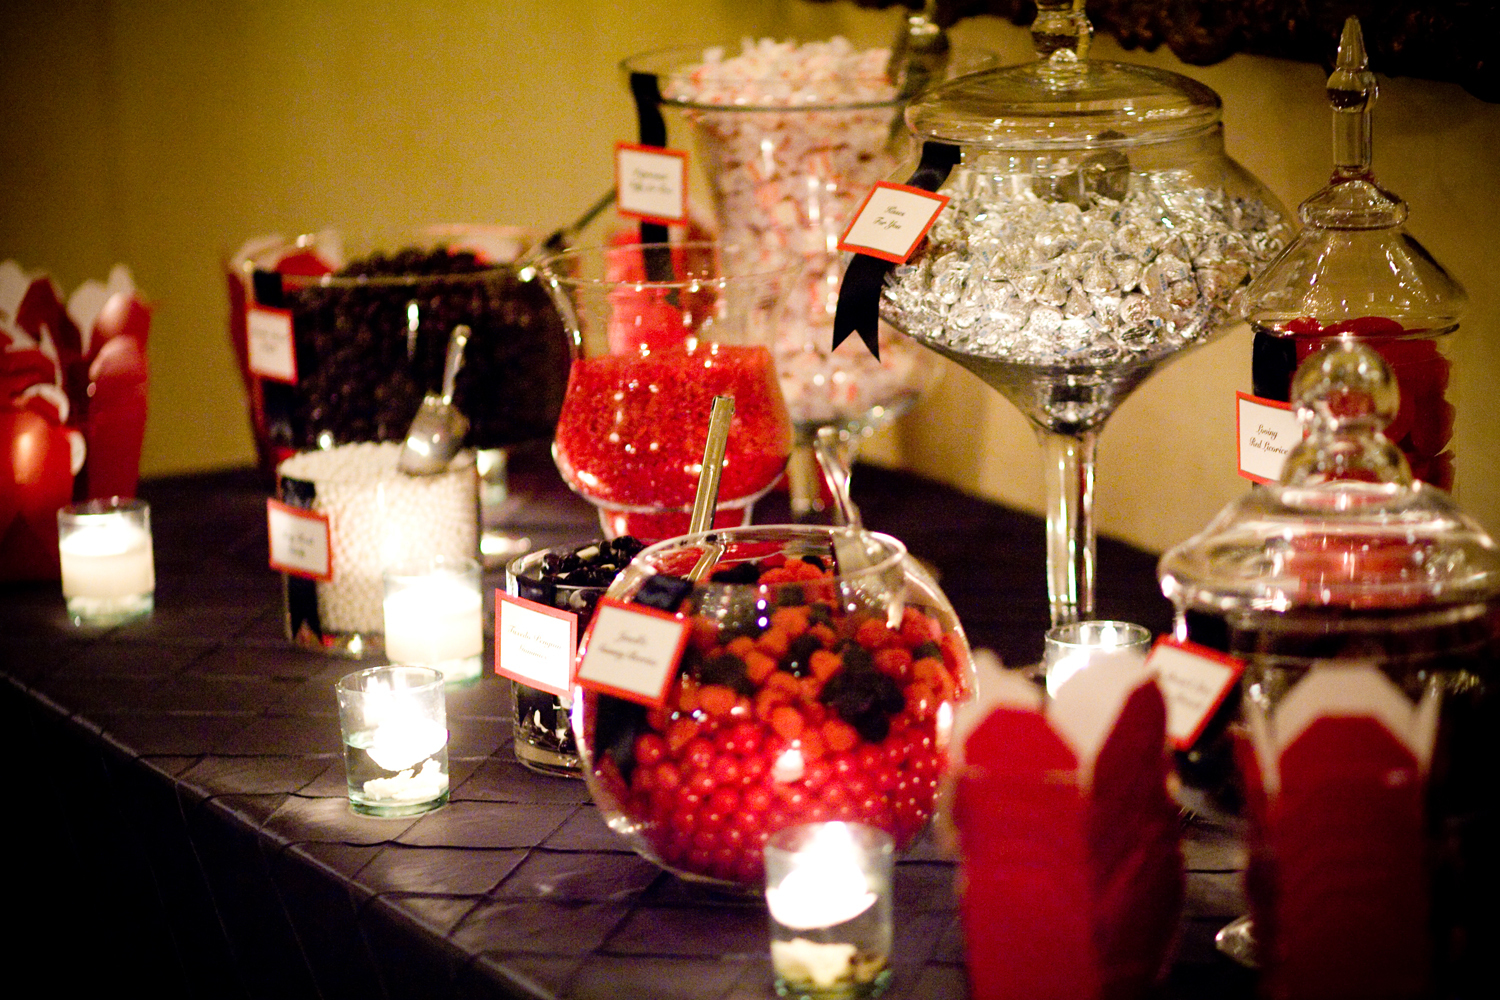 Reception, Flowers & Decor, Favors & Gifts, Stationery, red, black, Favors, Invitations, Candy, Bar, Lucky penny designs